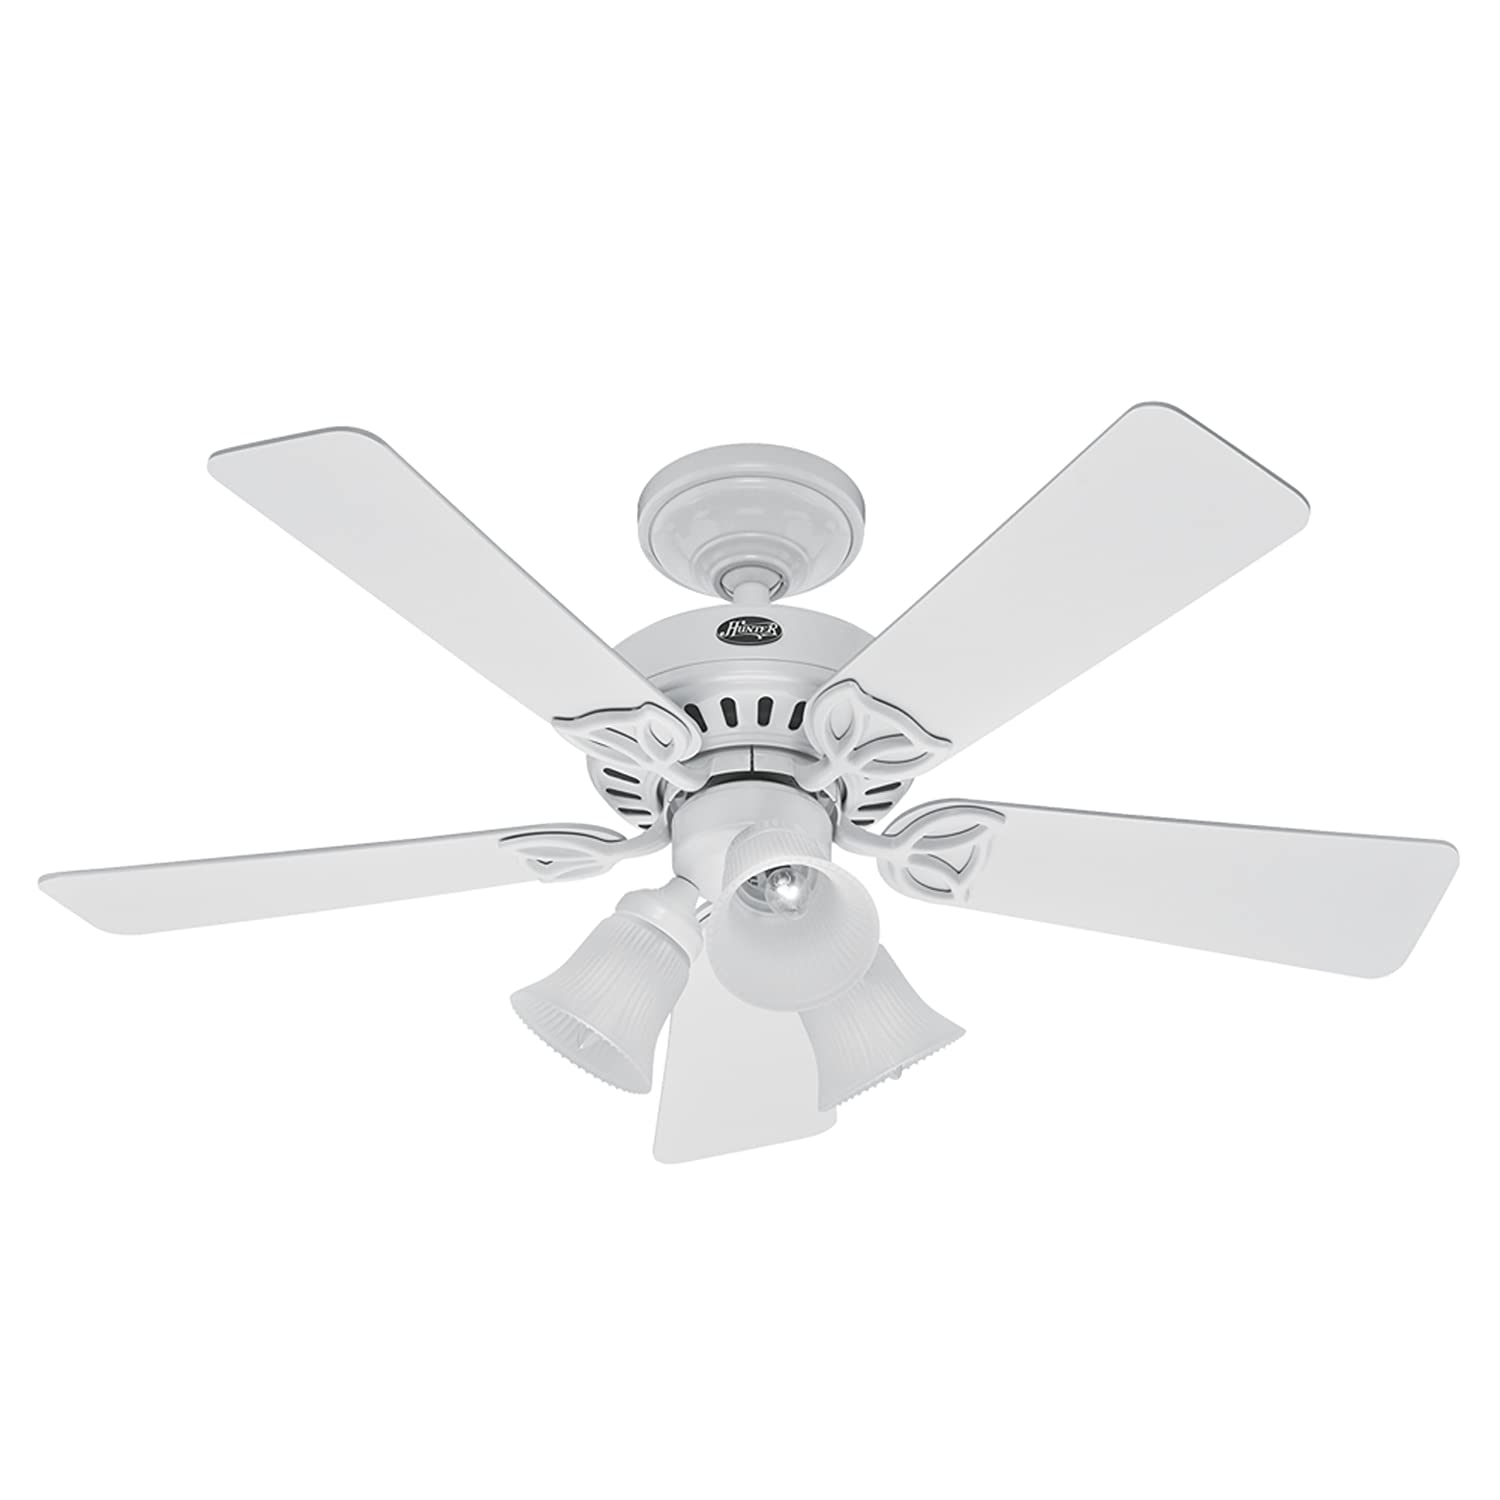 Hunter 20436 beacon hill three light 42 inch five blade ceiling fan hunter 20436 beacon hill three light 42 inch five blade ceiling fan white with frosted globes white ceiling fan with remote amazon aloadofball Choice Image